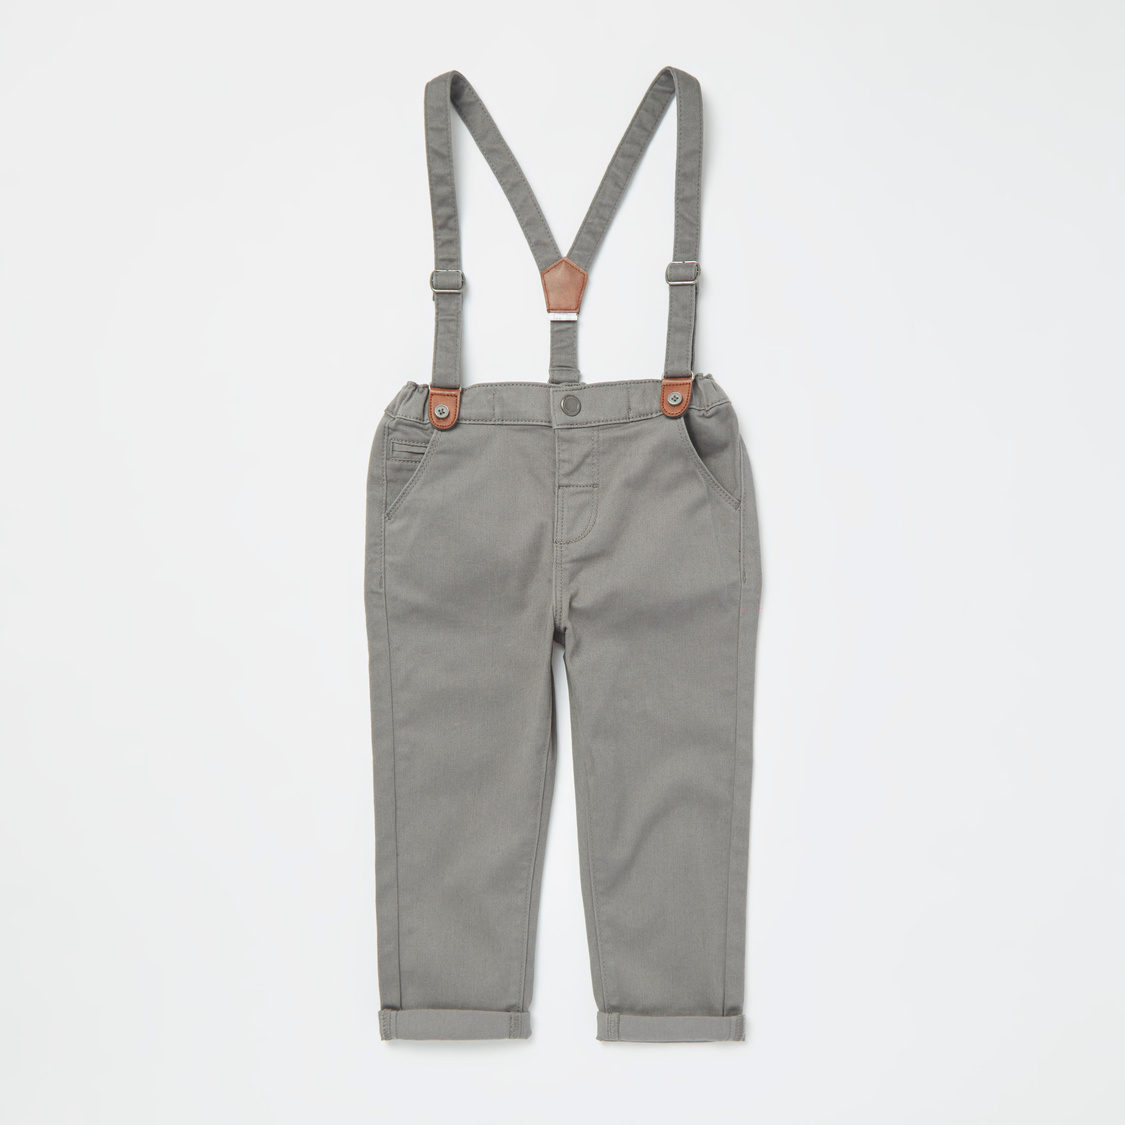 Checked Mandarin Collar Shirt and Full Length Pants with Suspenders